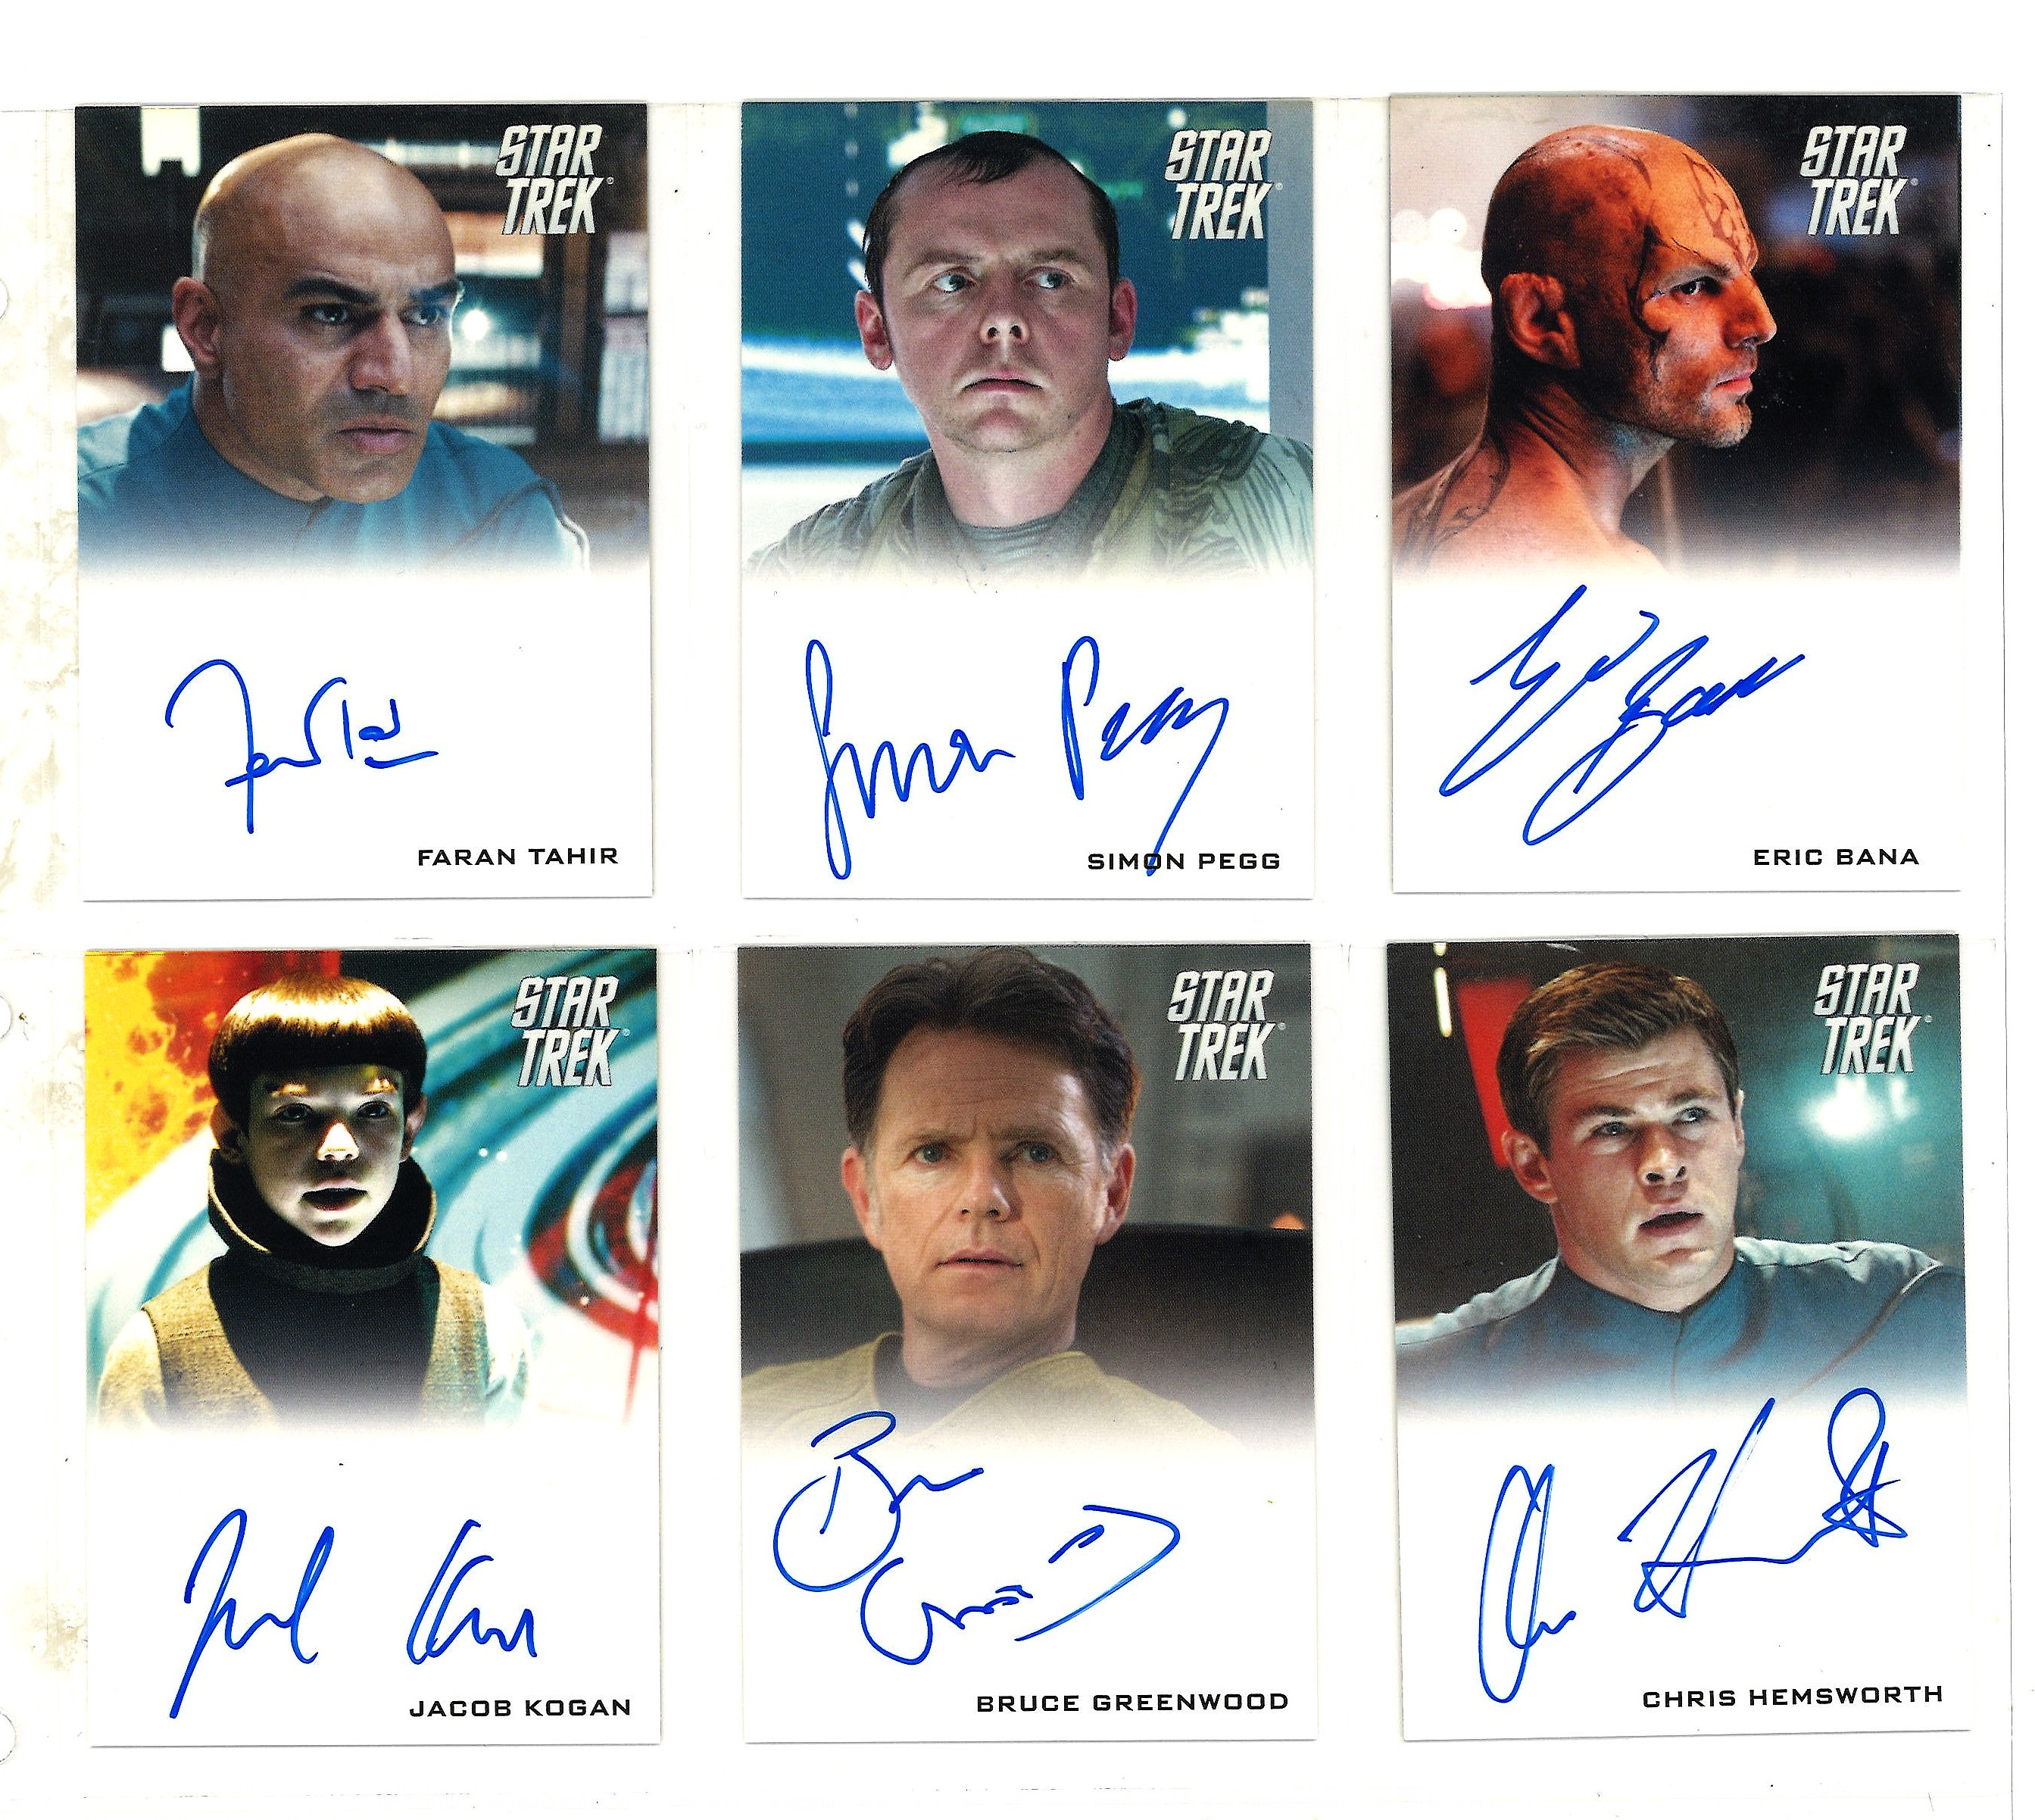 Lot 5 - Star Trek Limited edition collection of 6 autographed Rittenhouse trading cards. Each card has